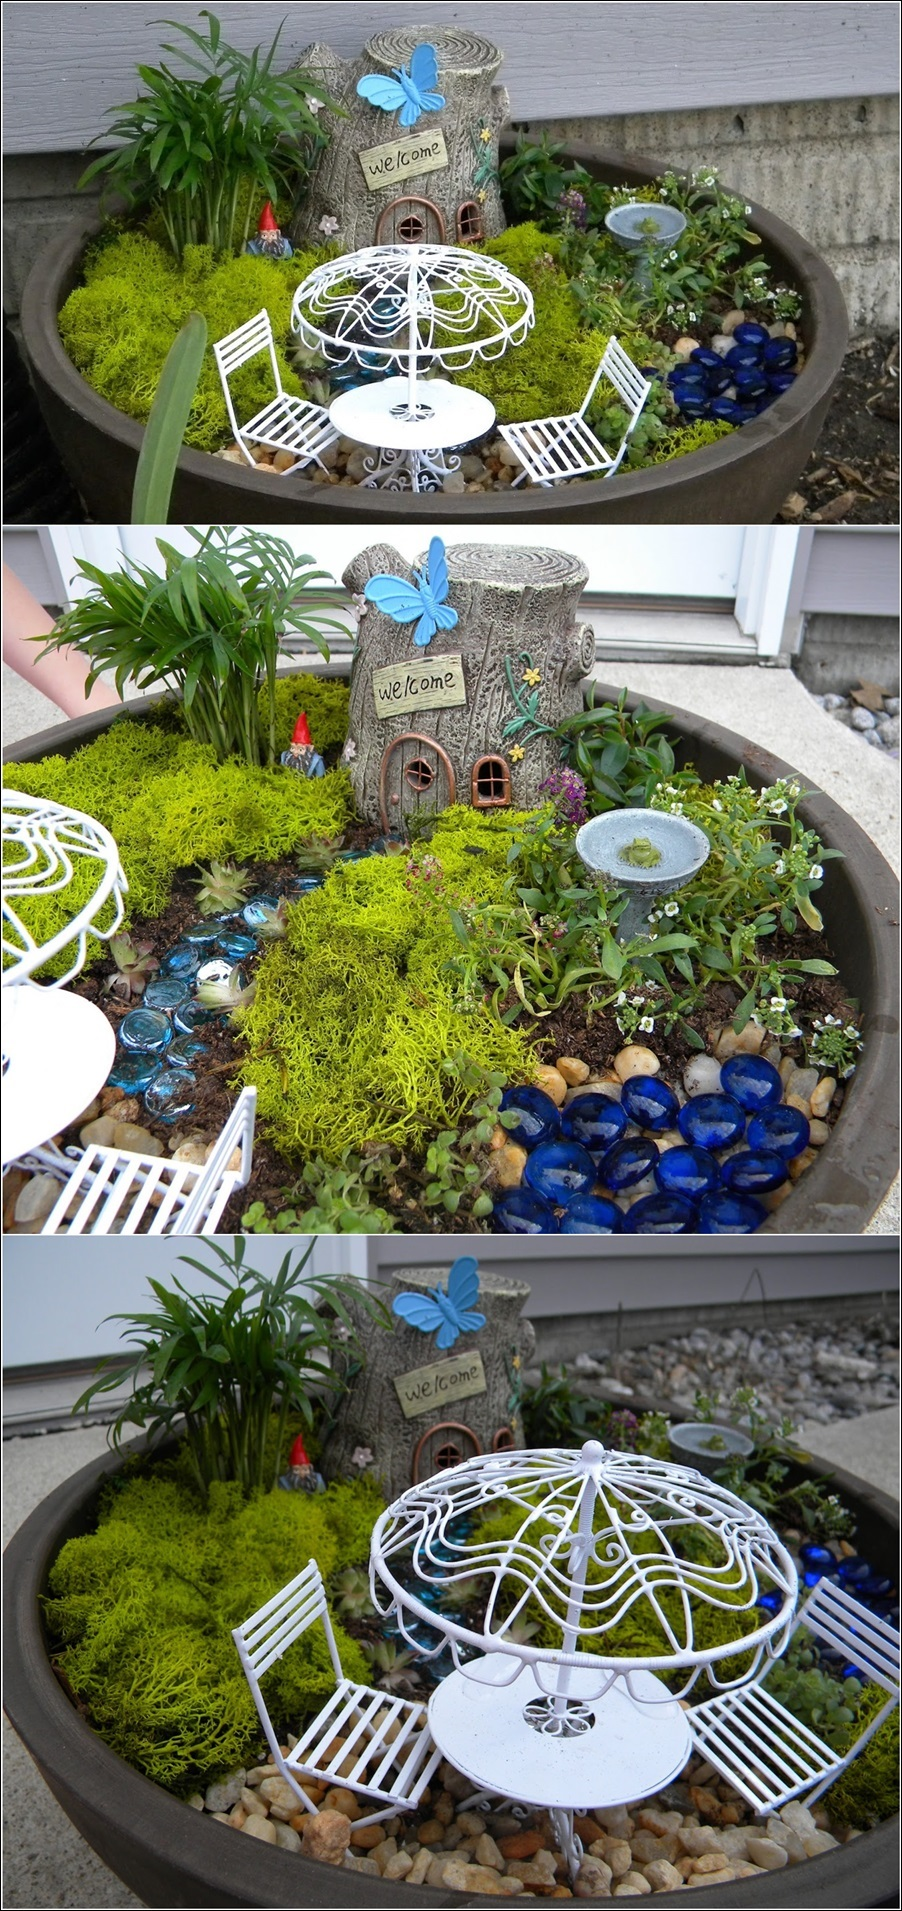 Dining Enchanted Miniature Fairy Gardens Fantasy Goes Miniature Fairy Gardens Diy Miniature Fairy Gardens Ideas garden Miniature Fairy Gardens